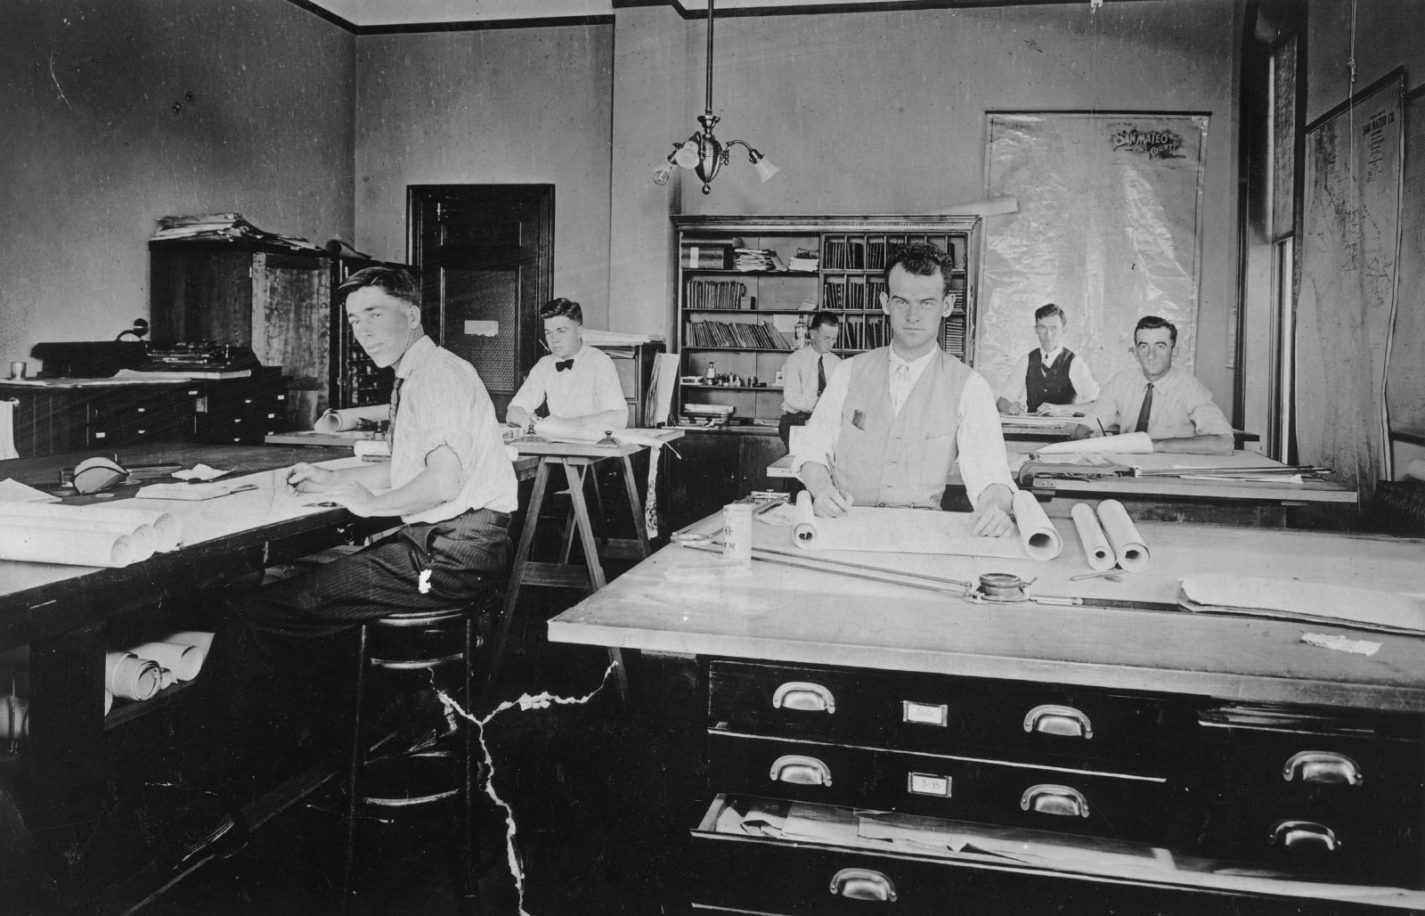 Archival photo of the drafting room of the county engineers office in San Mateo county 1915